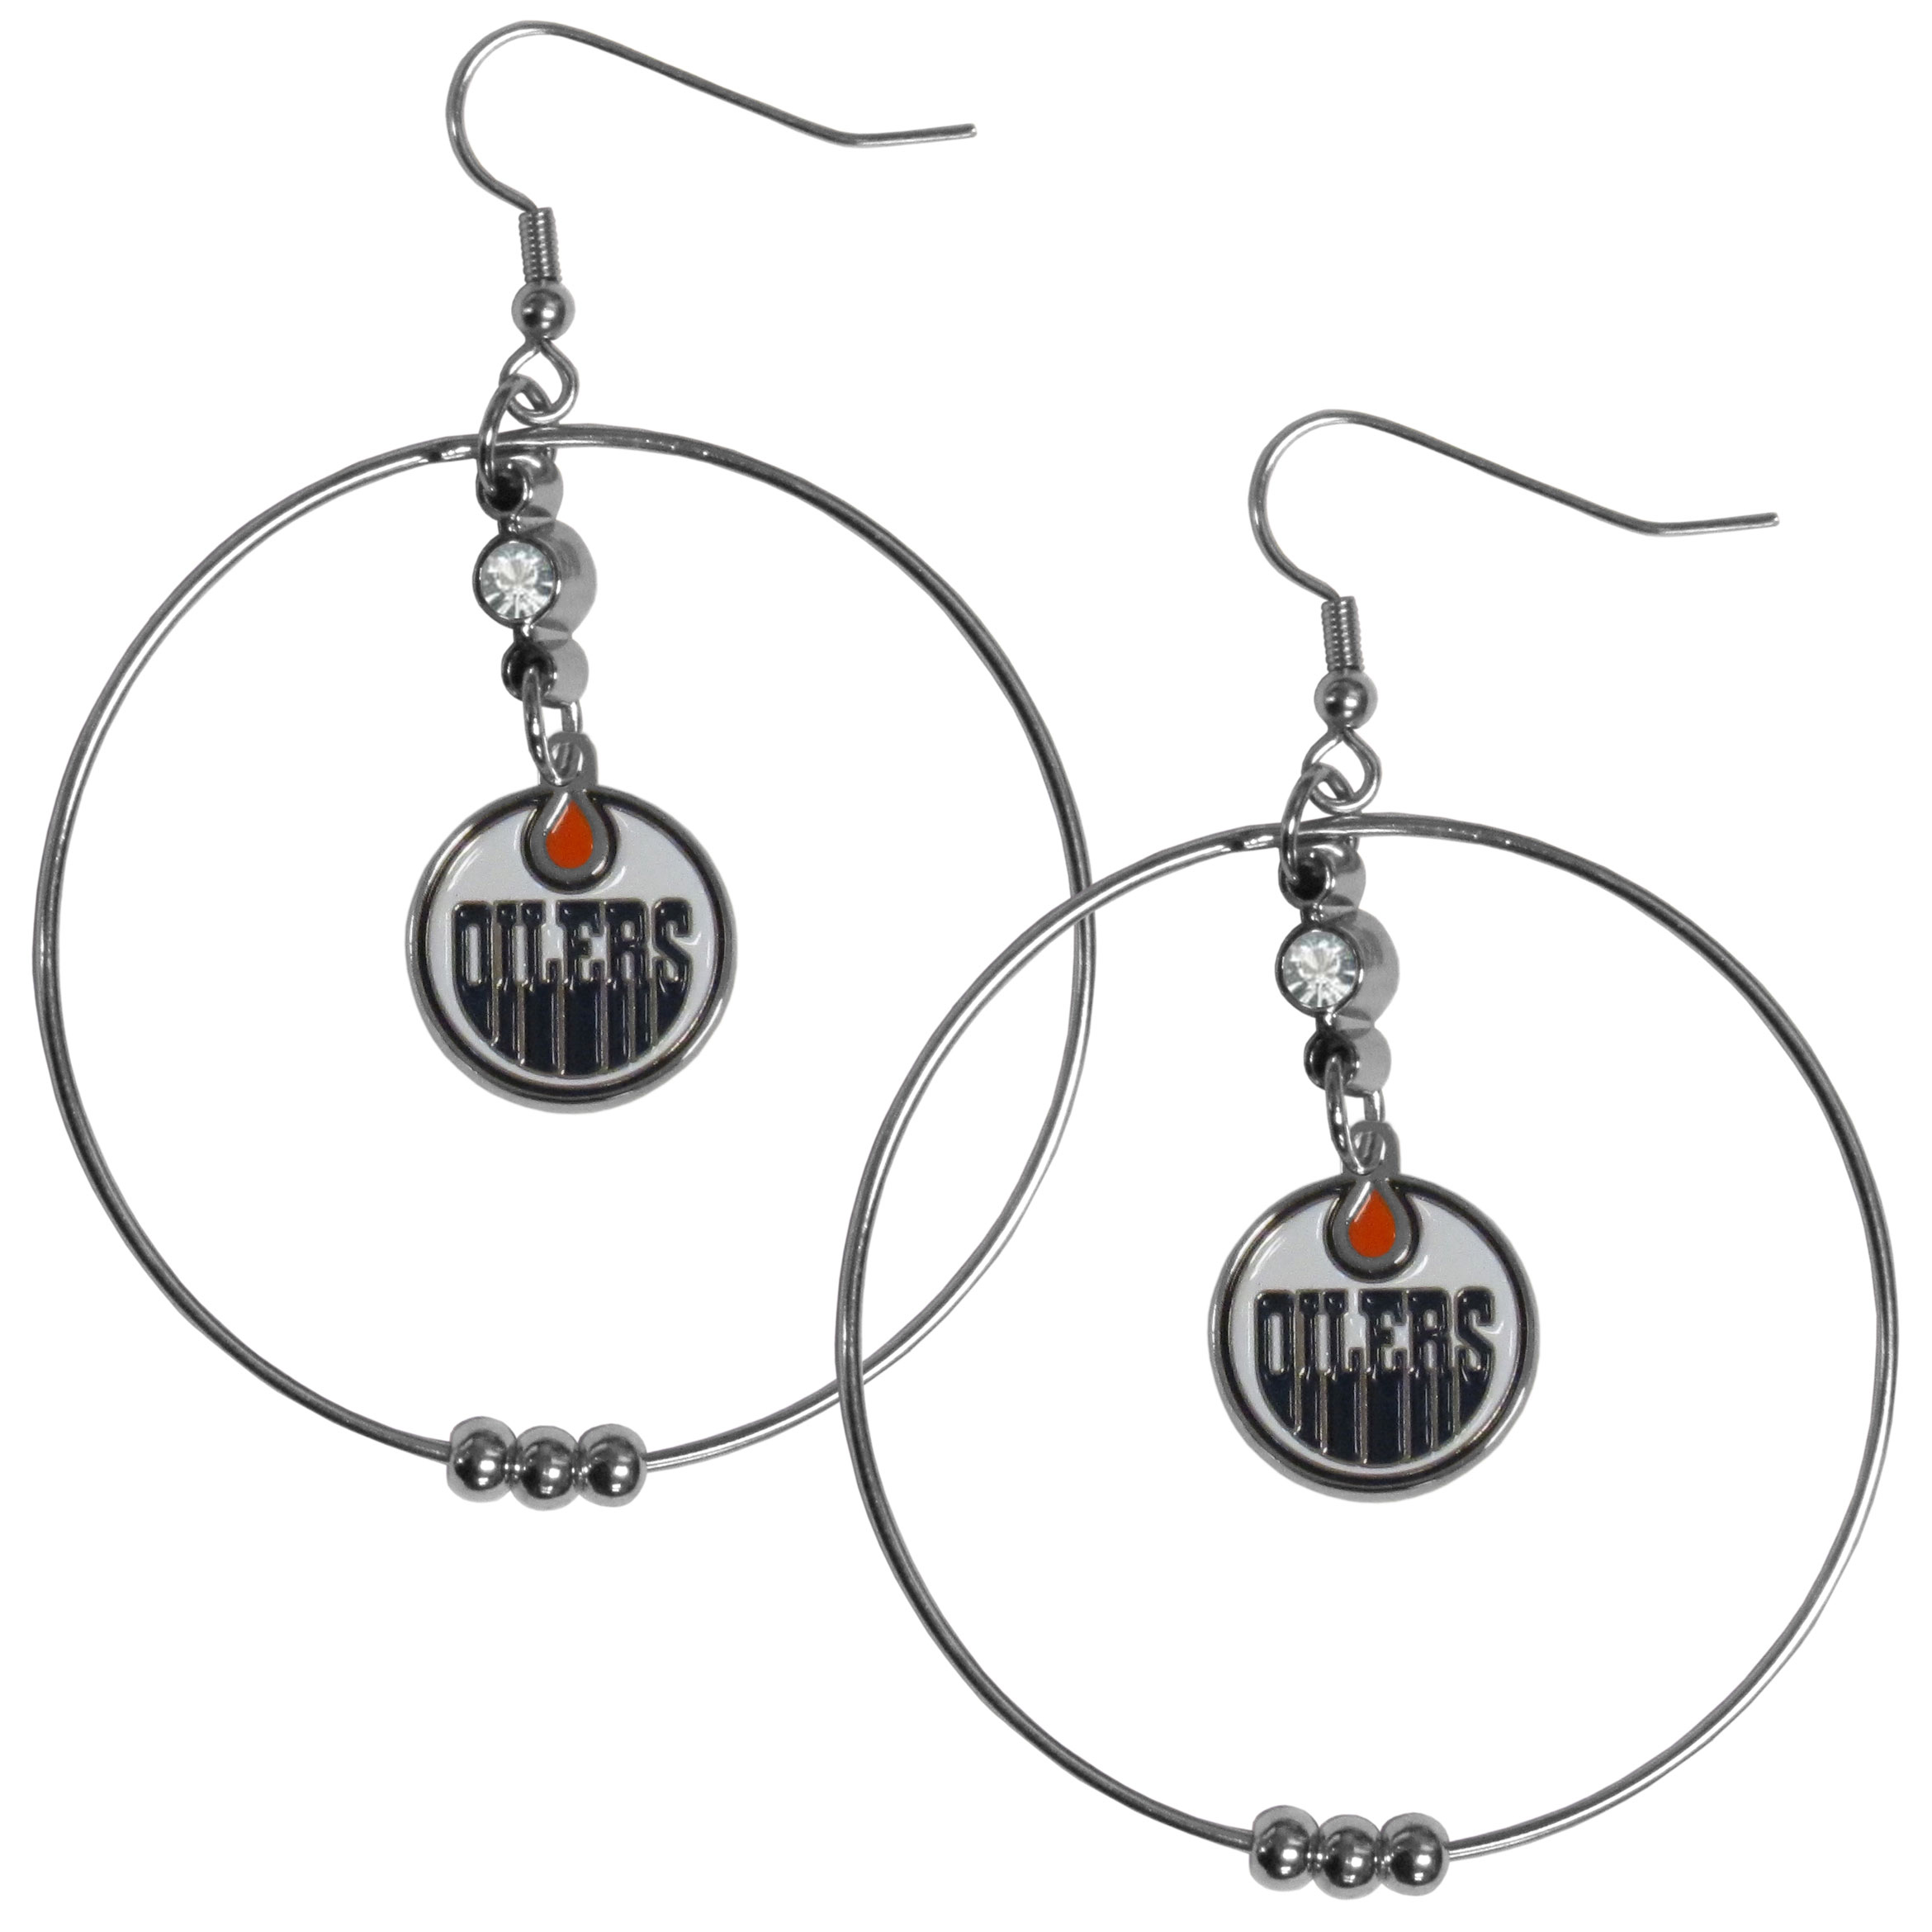 Edmonton Oilers® 2 Inch Hoop Earrings - Our large hoop earrings have a fully cast and enameled Edmonton Oilers® charm with enameled detail and a high polish nickel free chrome finish and rhinestone access. Hypoallergenic fishhook posts.